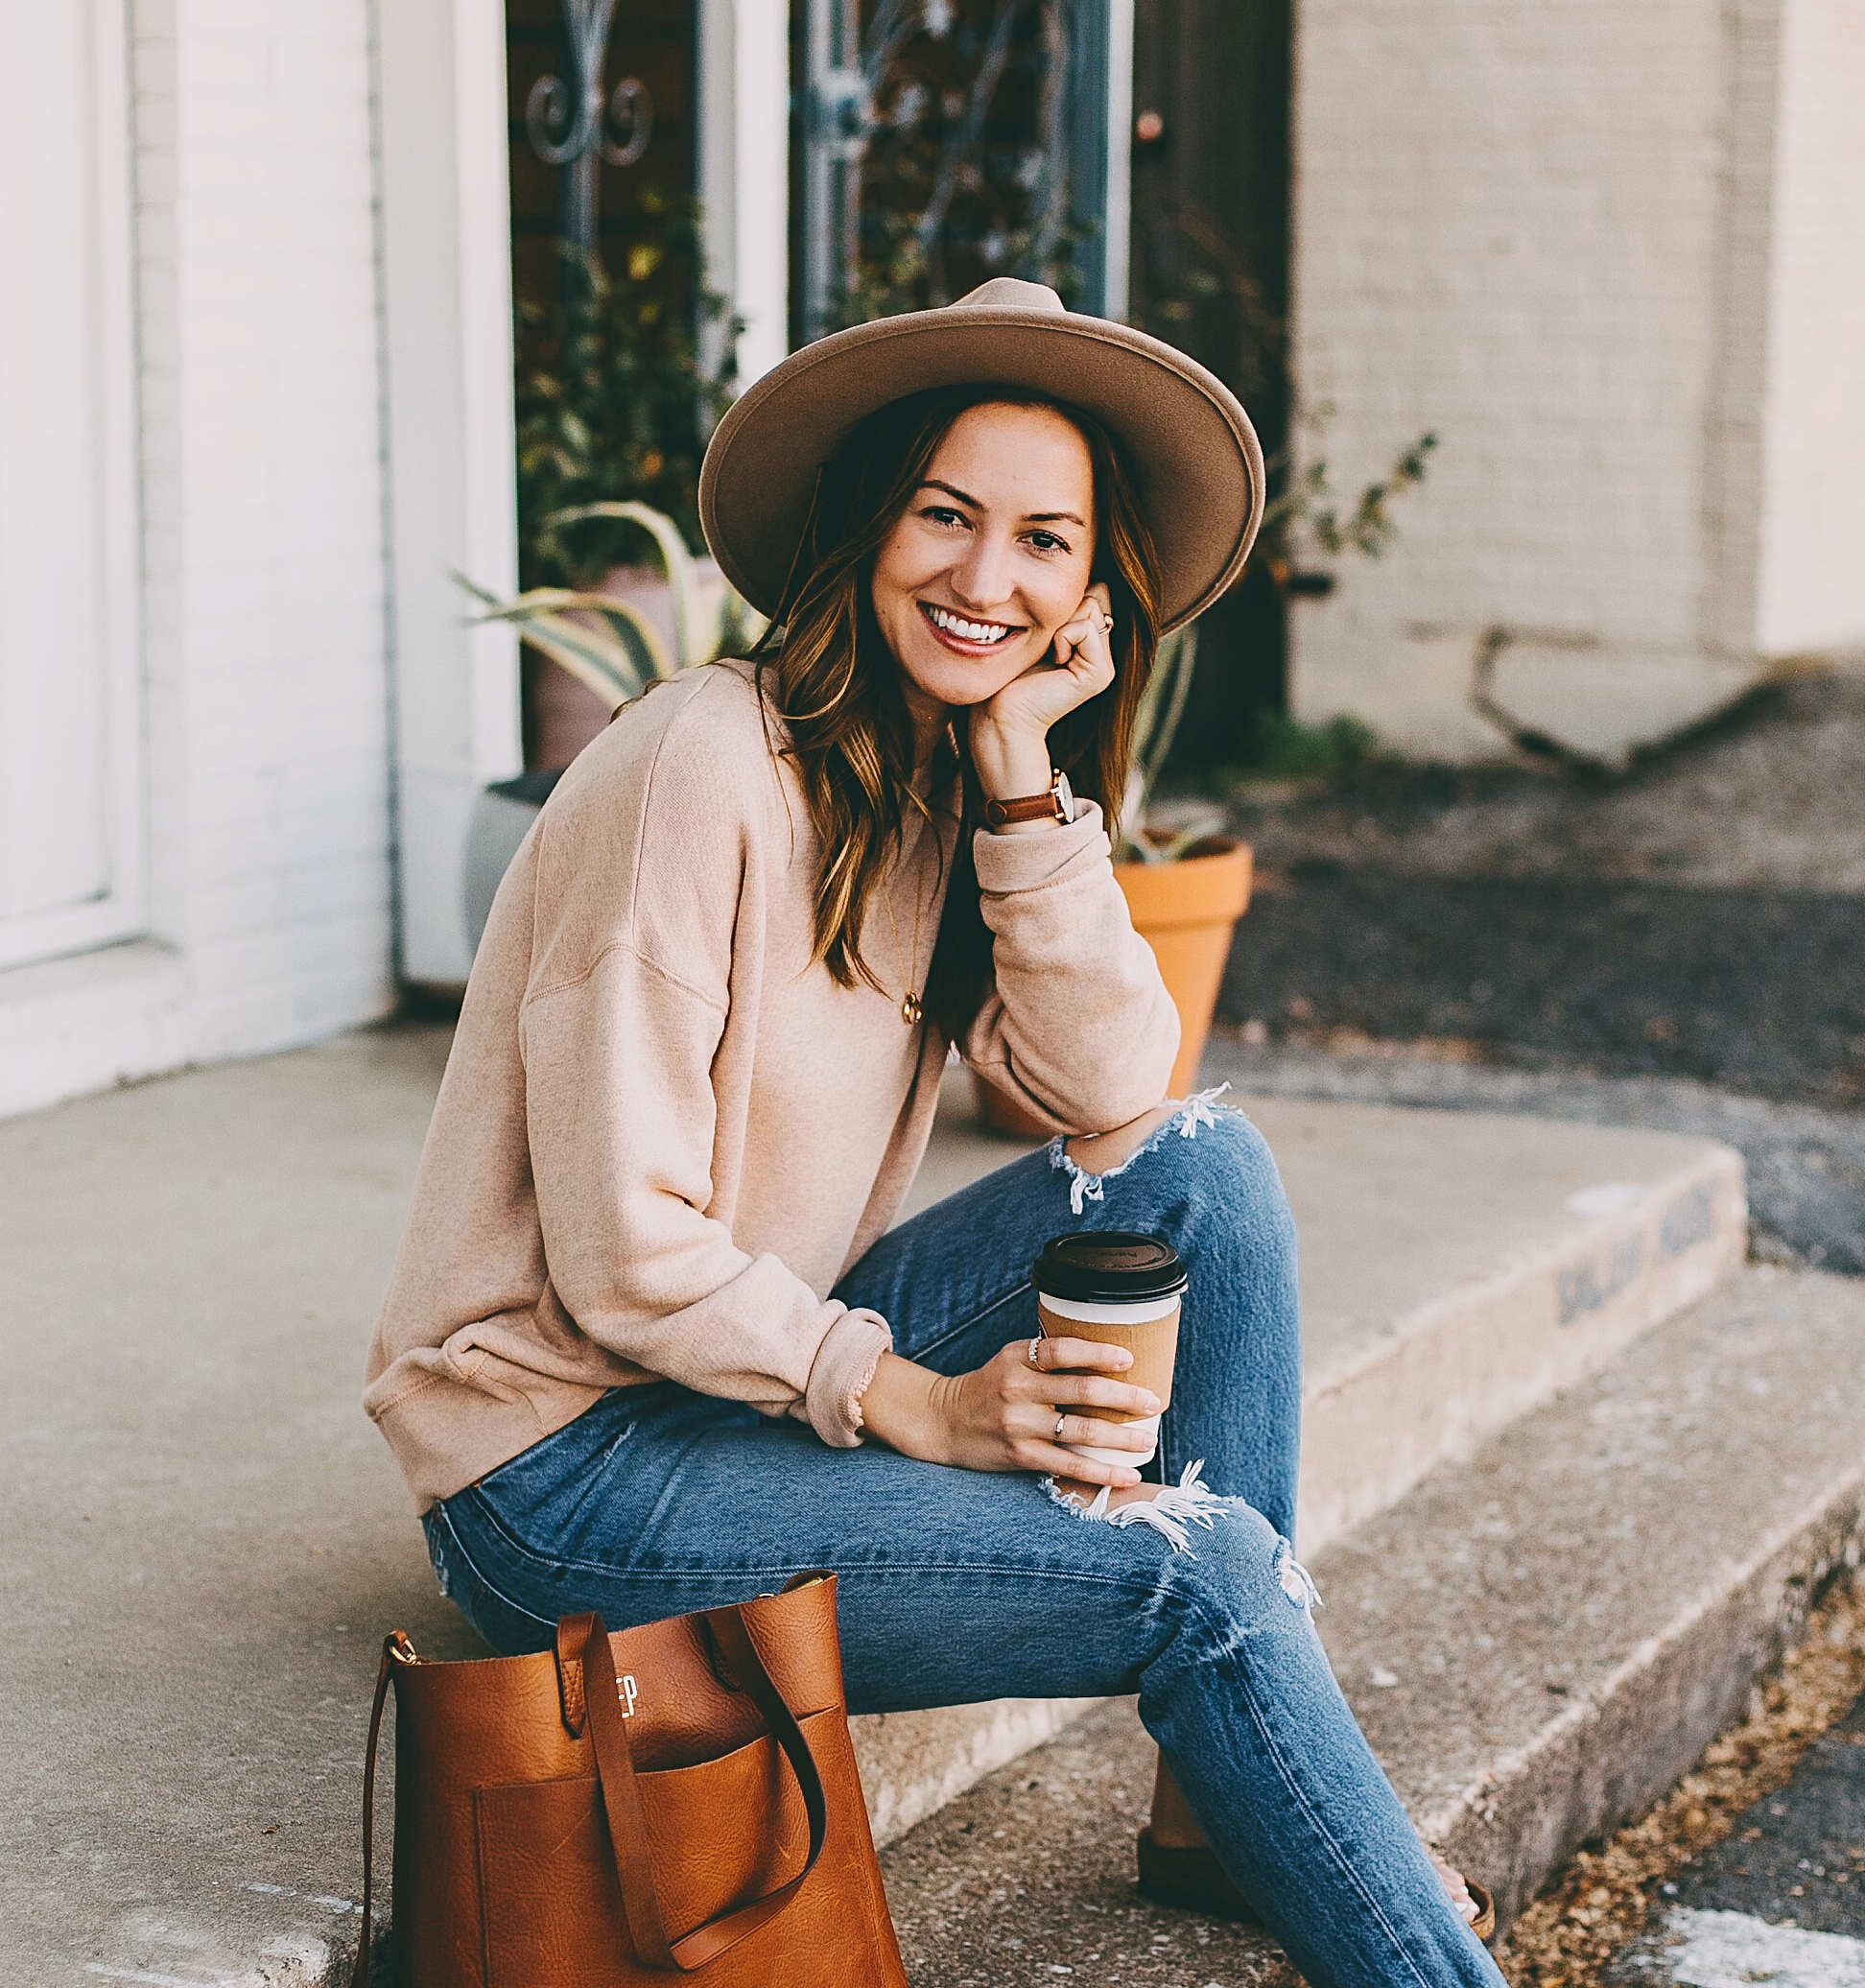 Feelin' Peachy - LivvyLand | Austin Fashion and Style Blogger